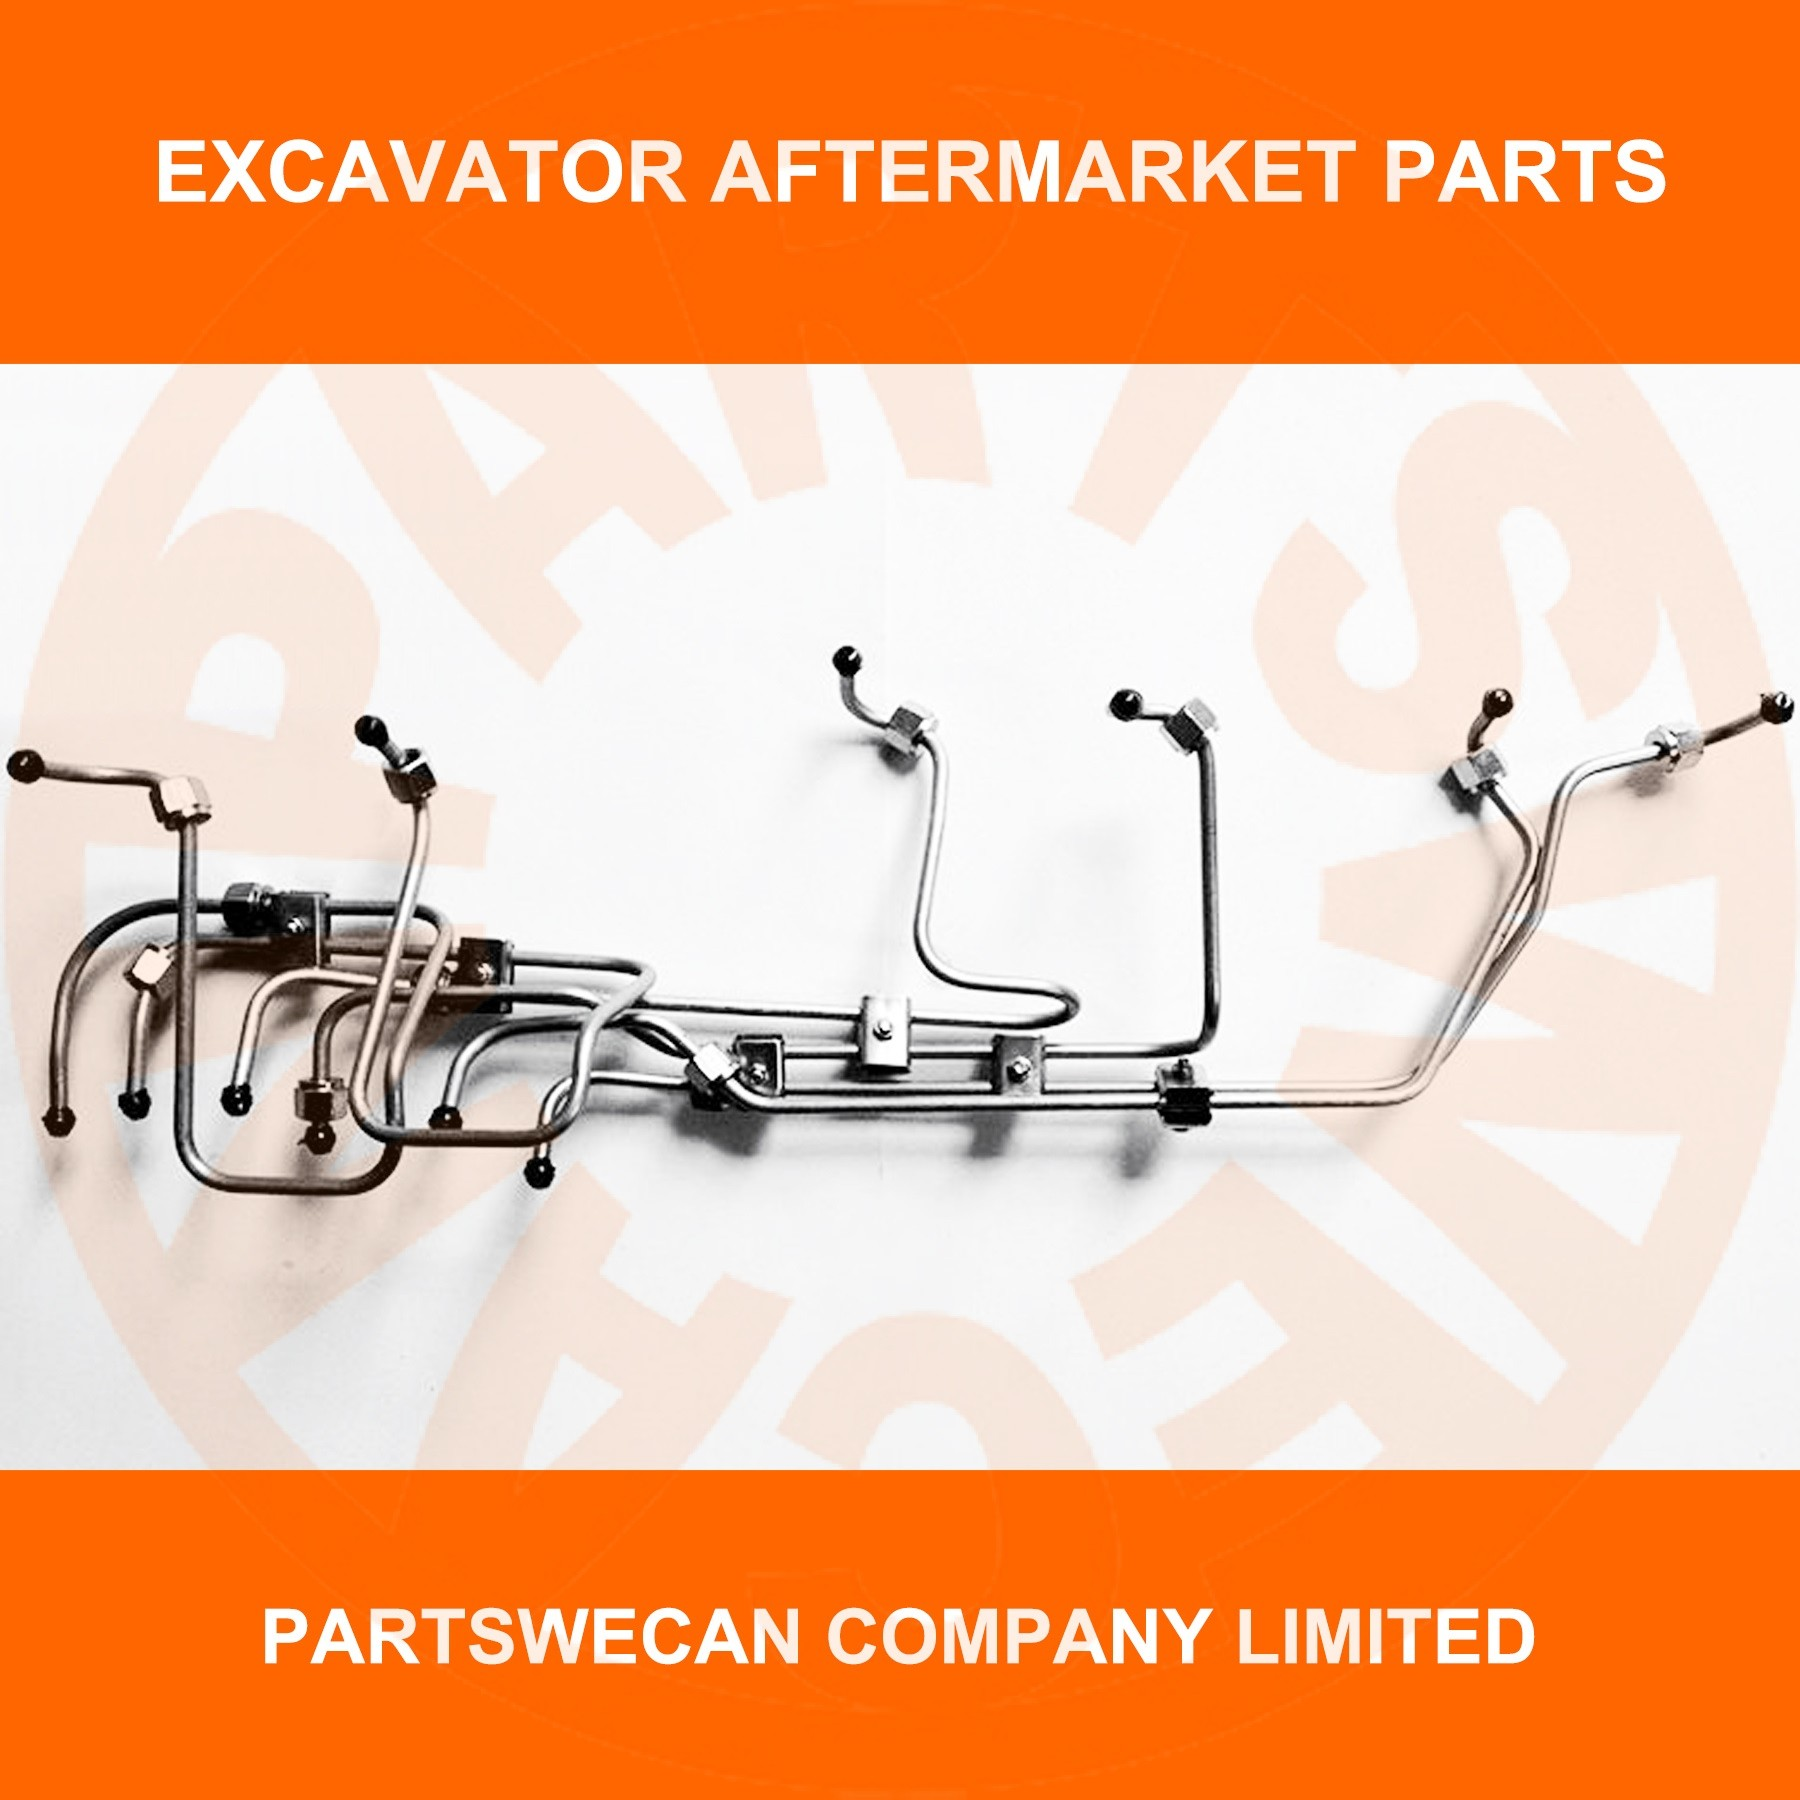 FUEL INJECTION PIPE DAEWOO DB58 DB58T ENGINE DOOSAN DH225 DH220-5 -7  EXCAVATOR AFTERMARKET PARTS